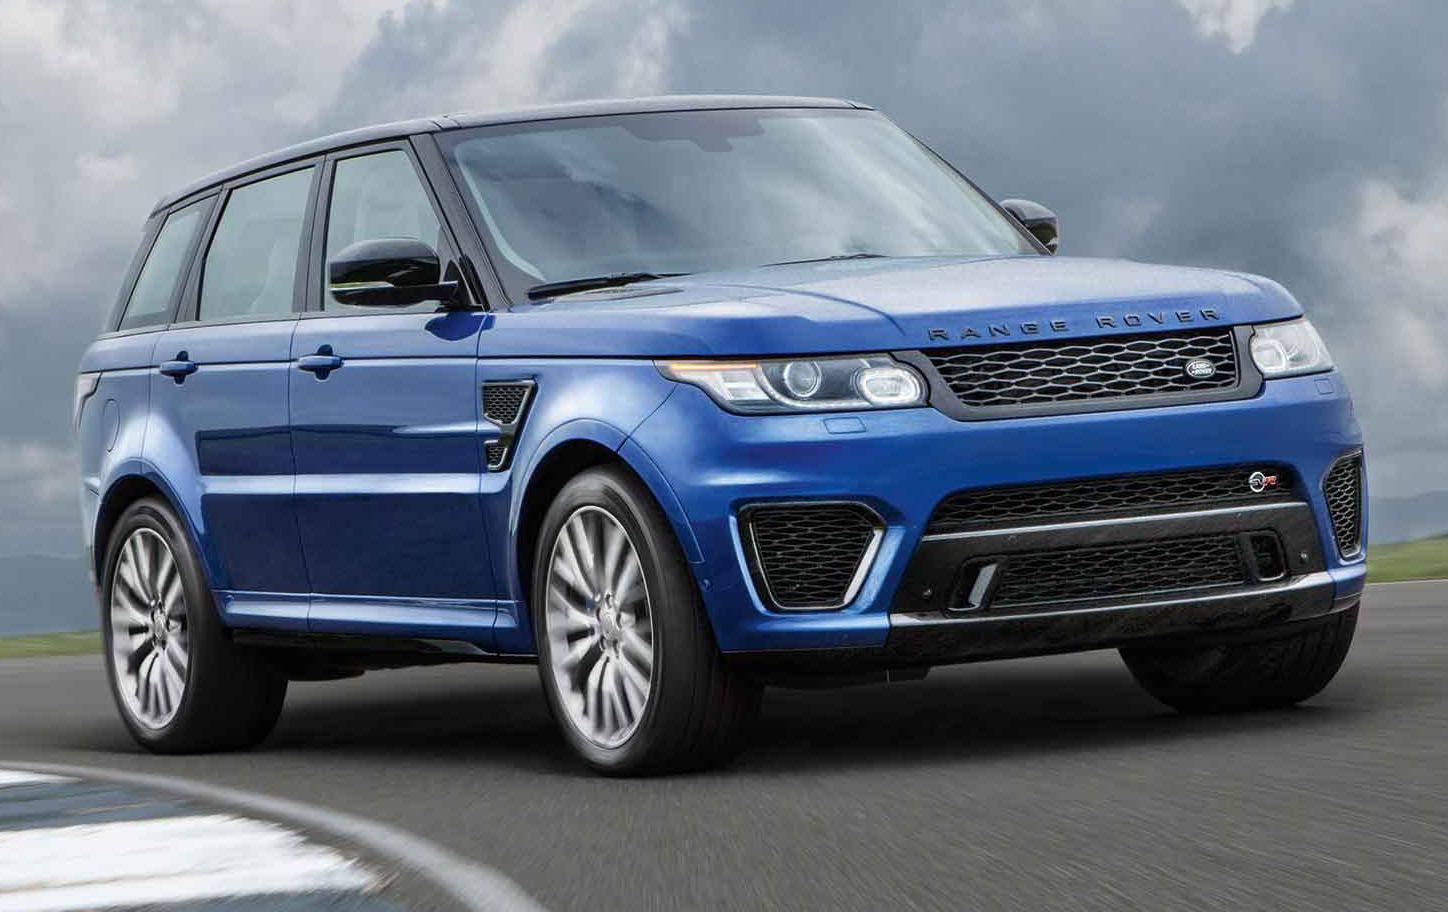 2015 land rover range rover sport svr review we drive the. Black Bedroom Furniture Sets. Home Design Ideas